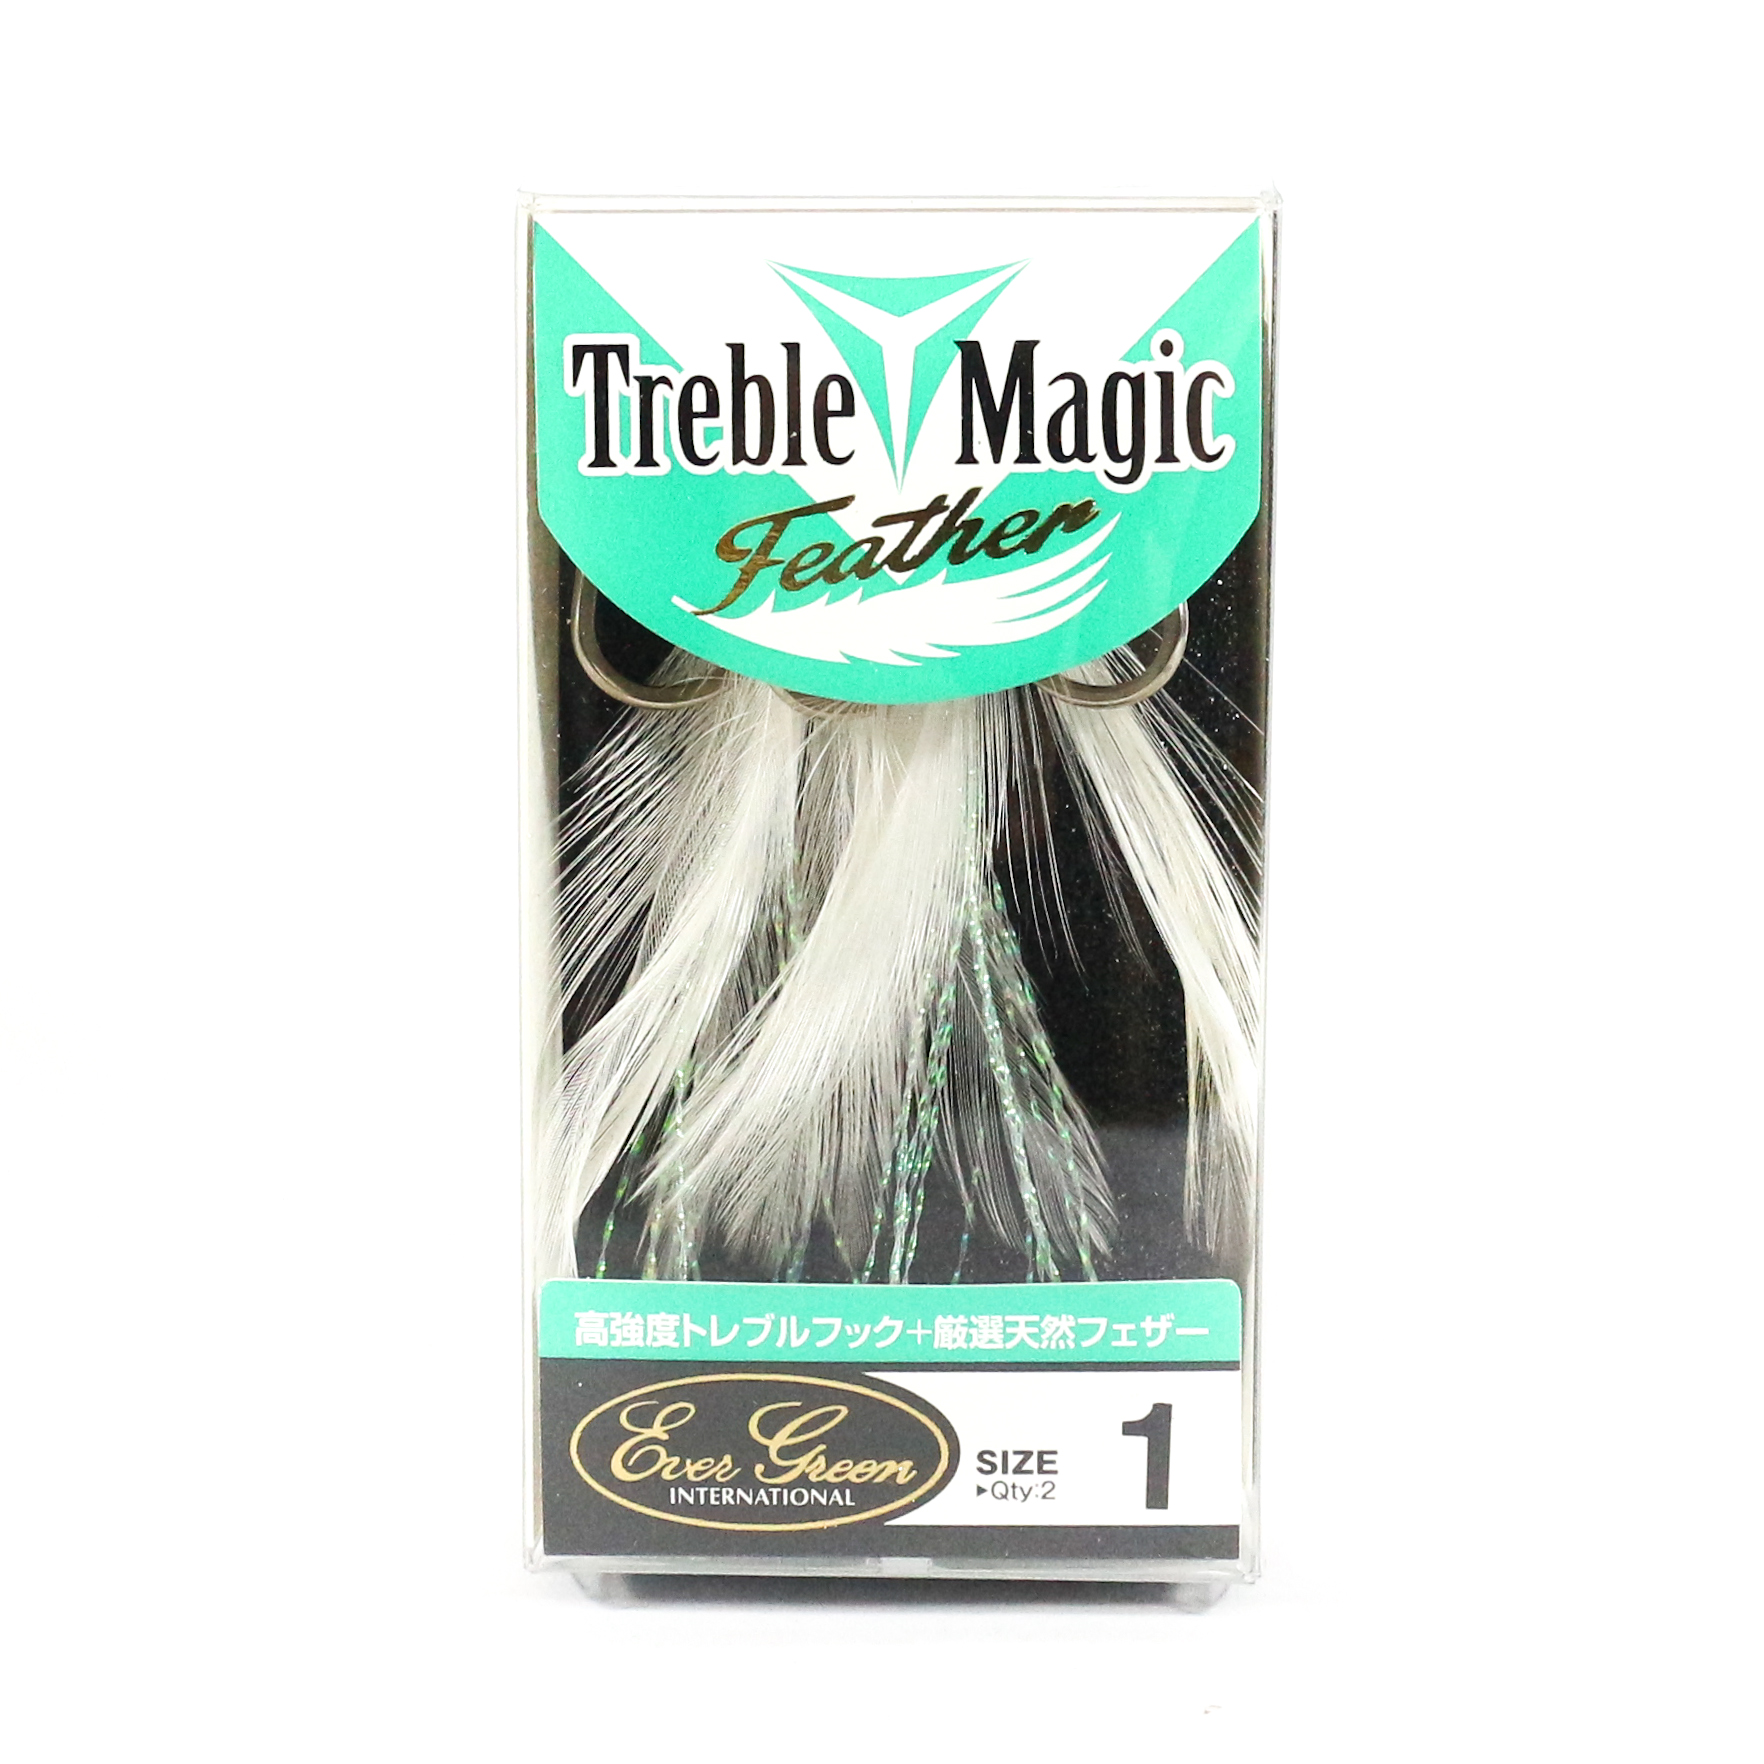 Evergreen Treble Hooks Treble Magic Feather Size 1 (4106)